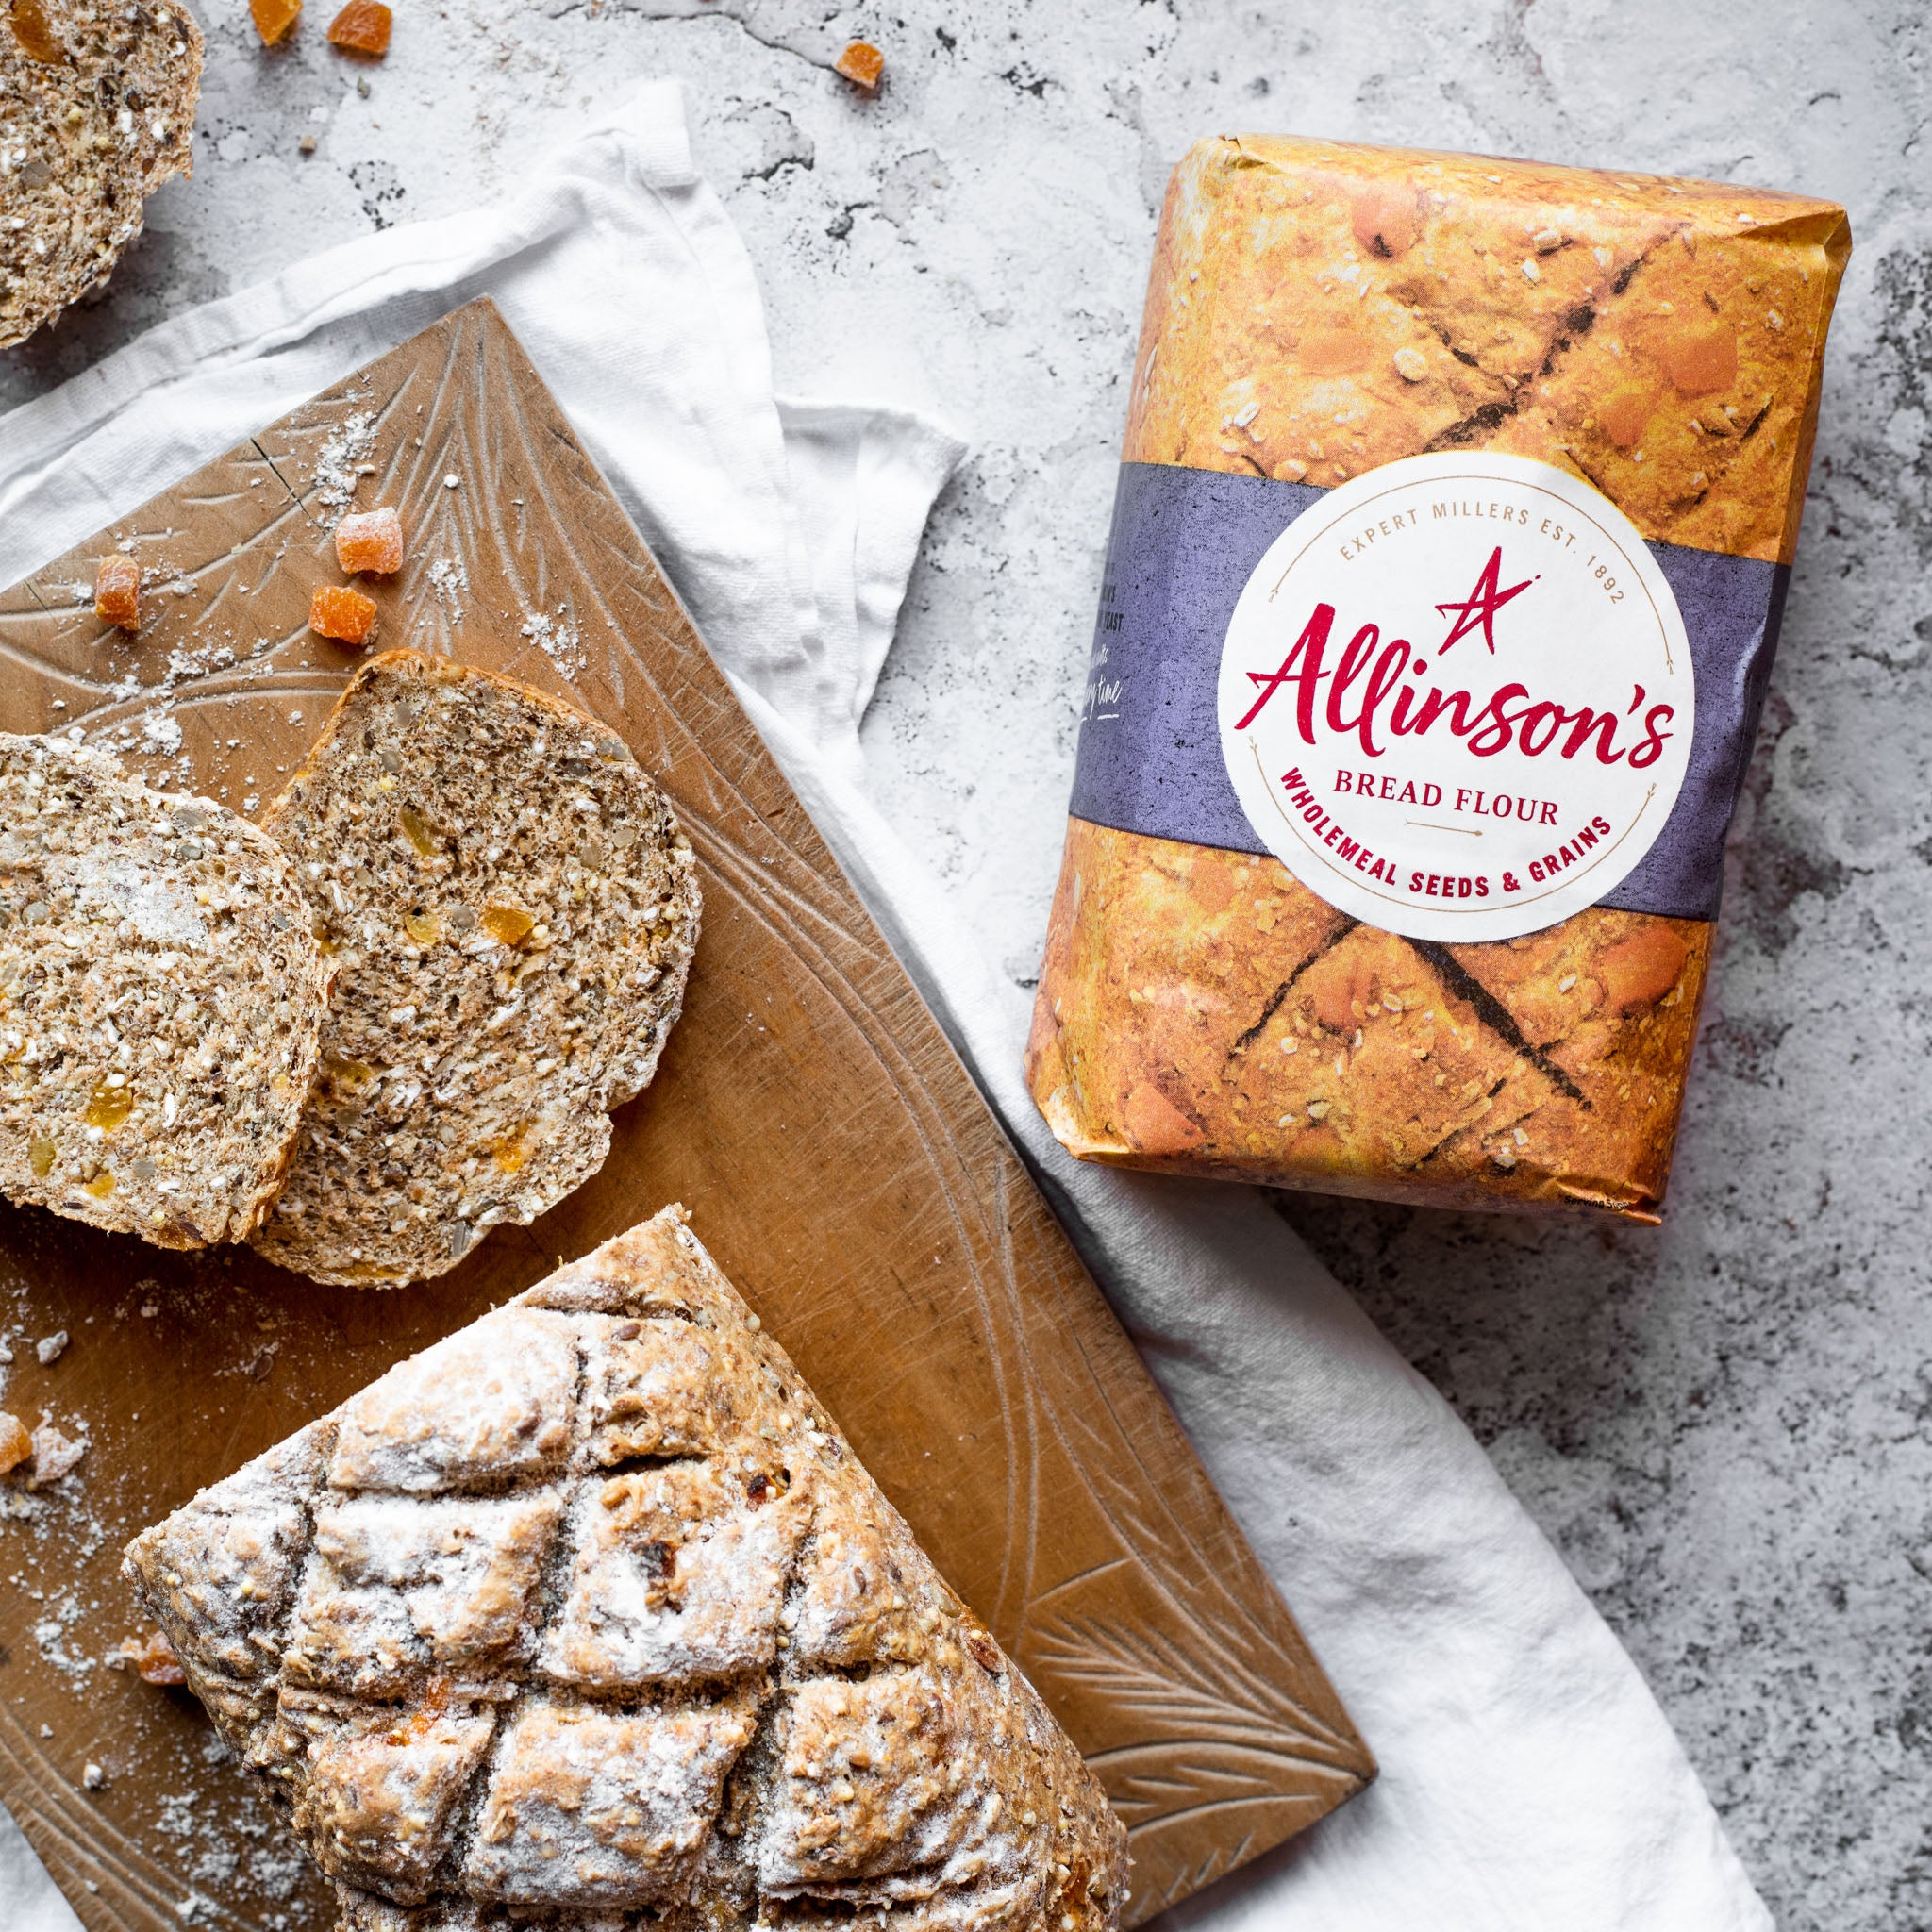 Wholemeal-Seed-Grain-Apricot-Loaf-by-Allinson-s-(4).jpg